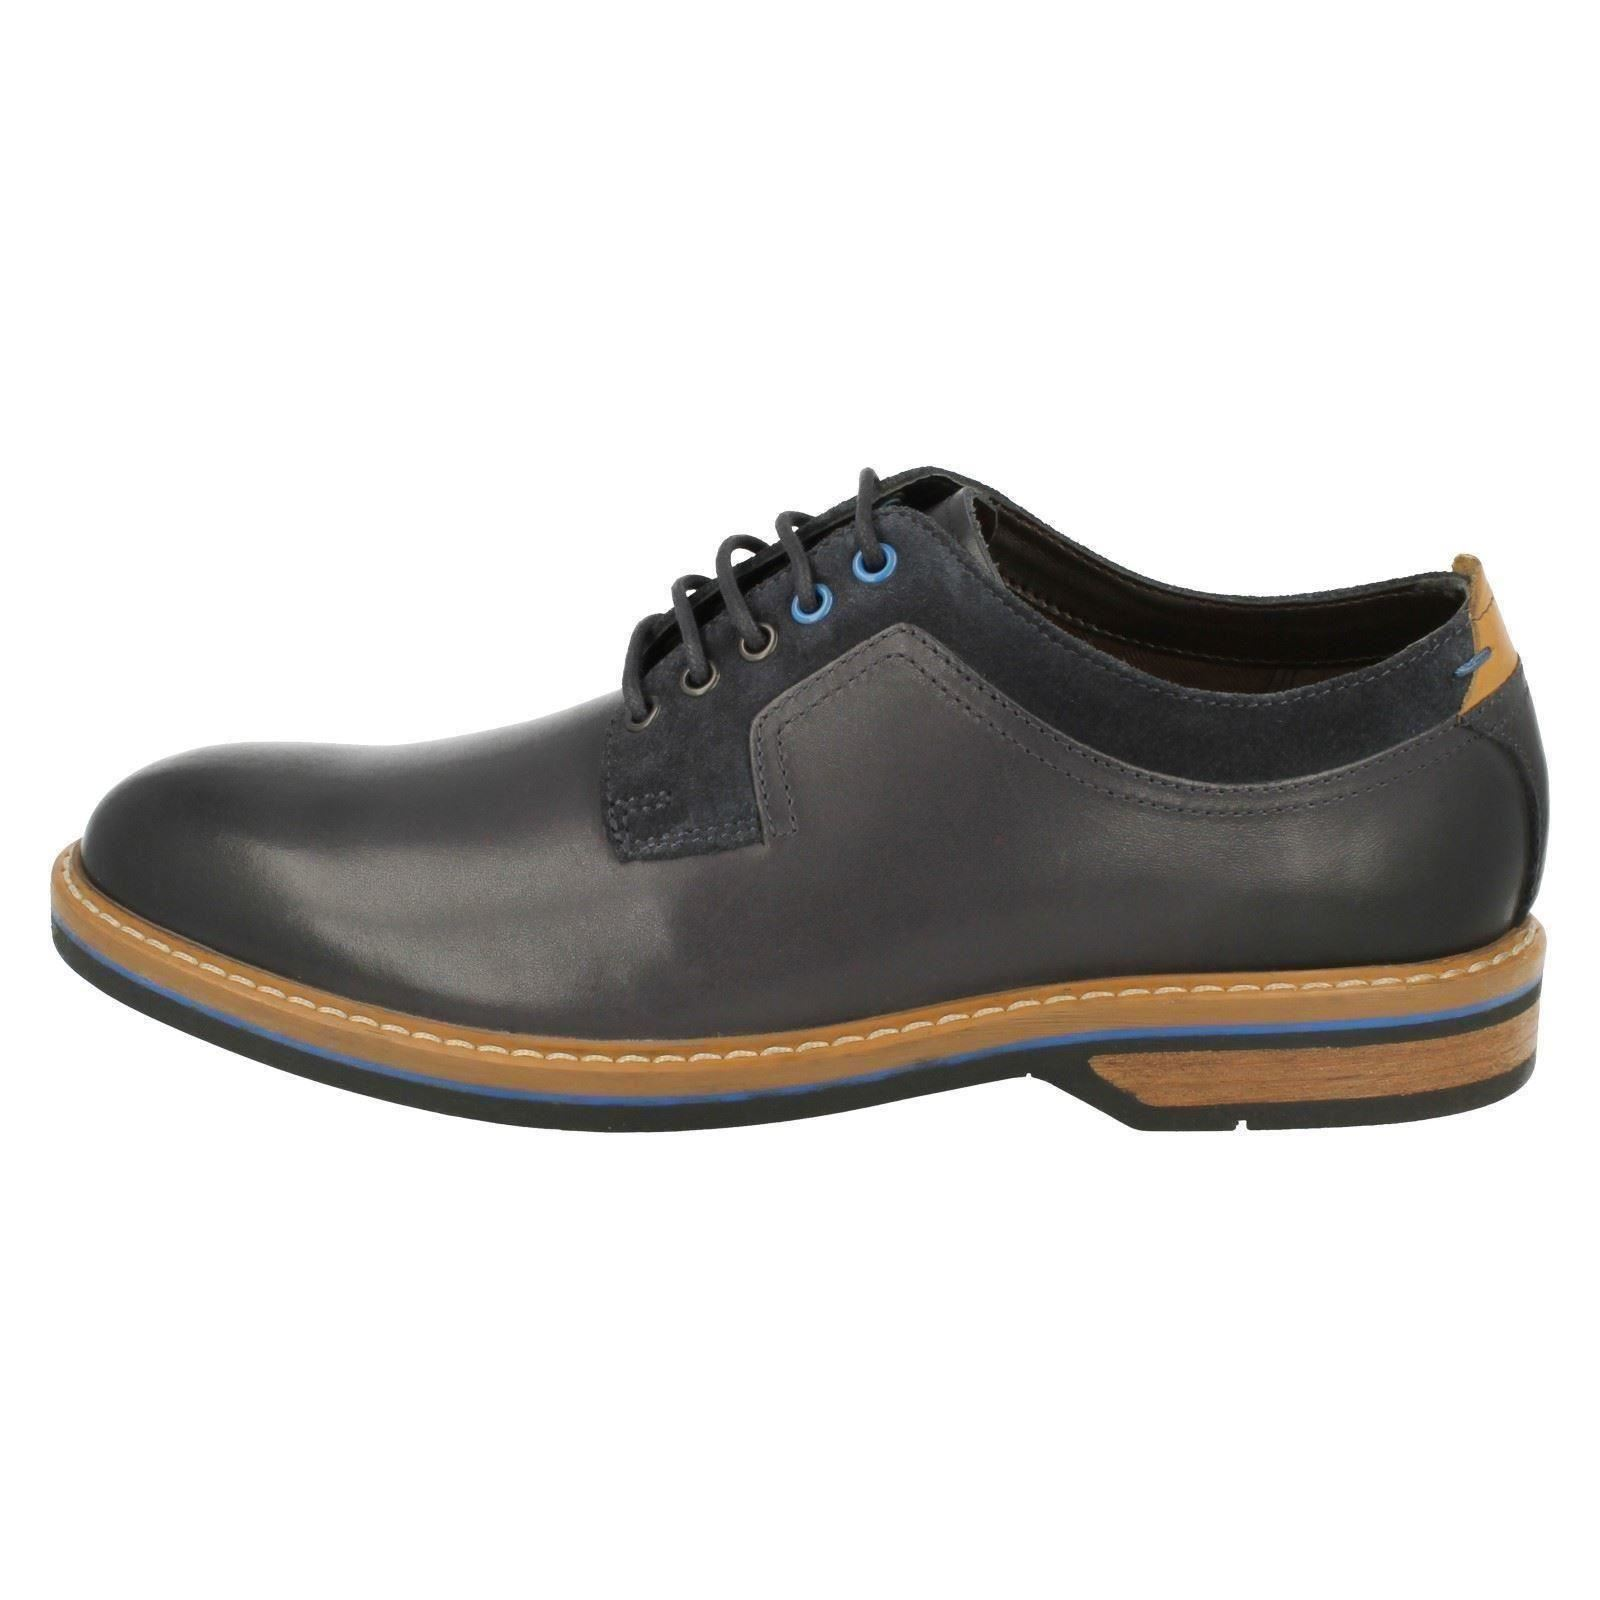 Men's The Clarks Formal Lace Up Shoes The Men's Style - Pitney Walk 74598b